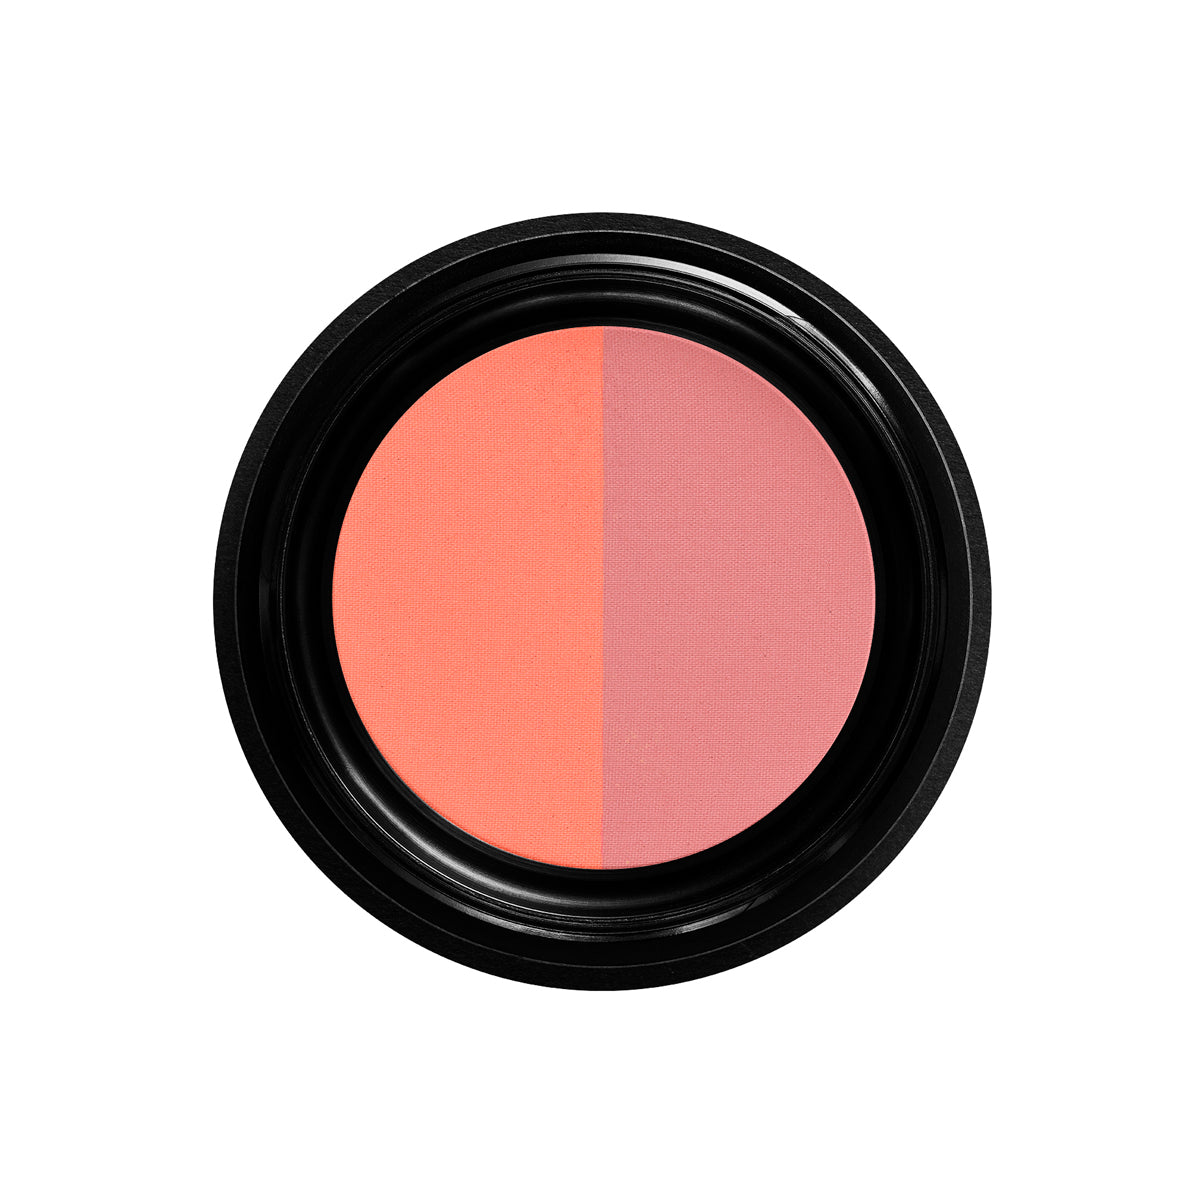 Custom Duo blush palette by Manasi7. Natural makeup made with organic and wild-harvested ingredients.